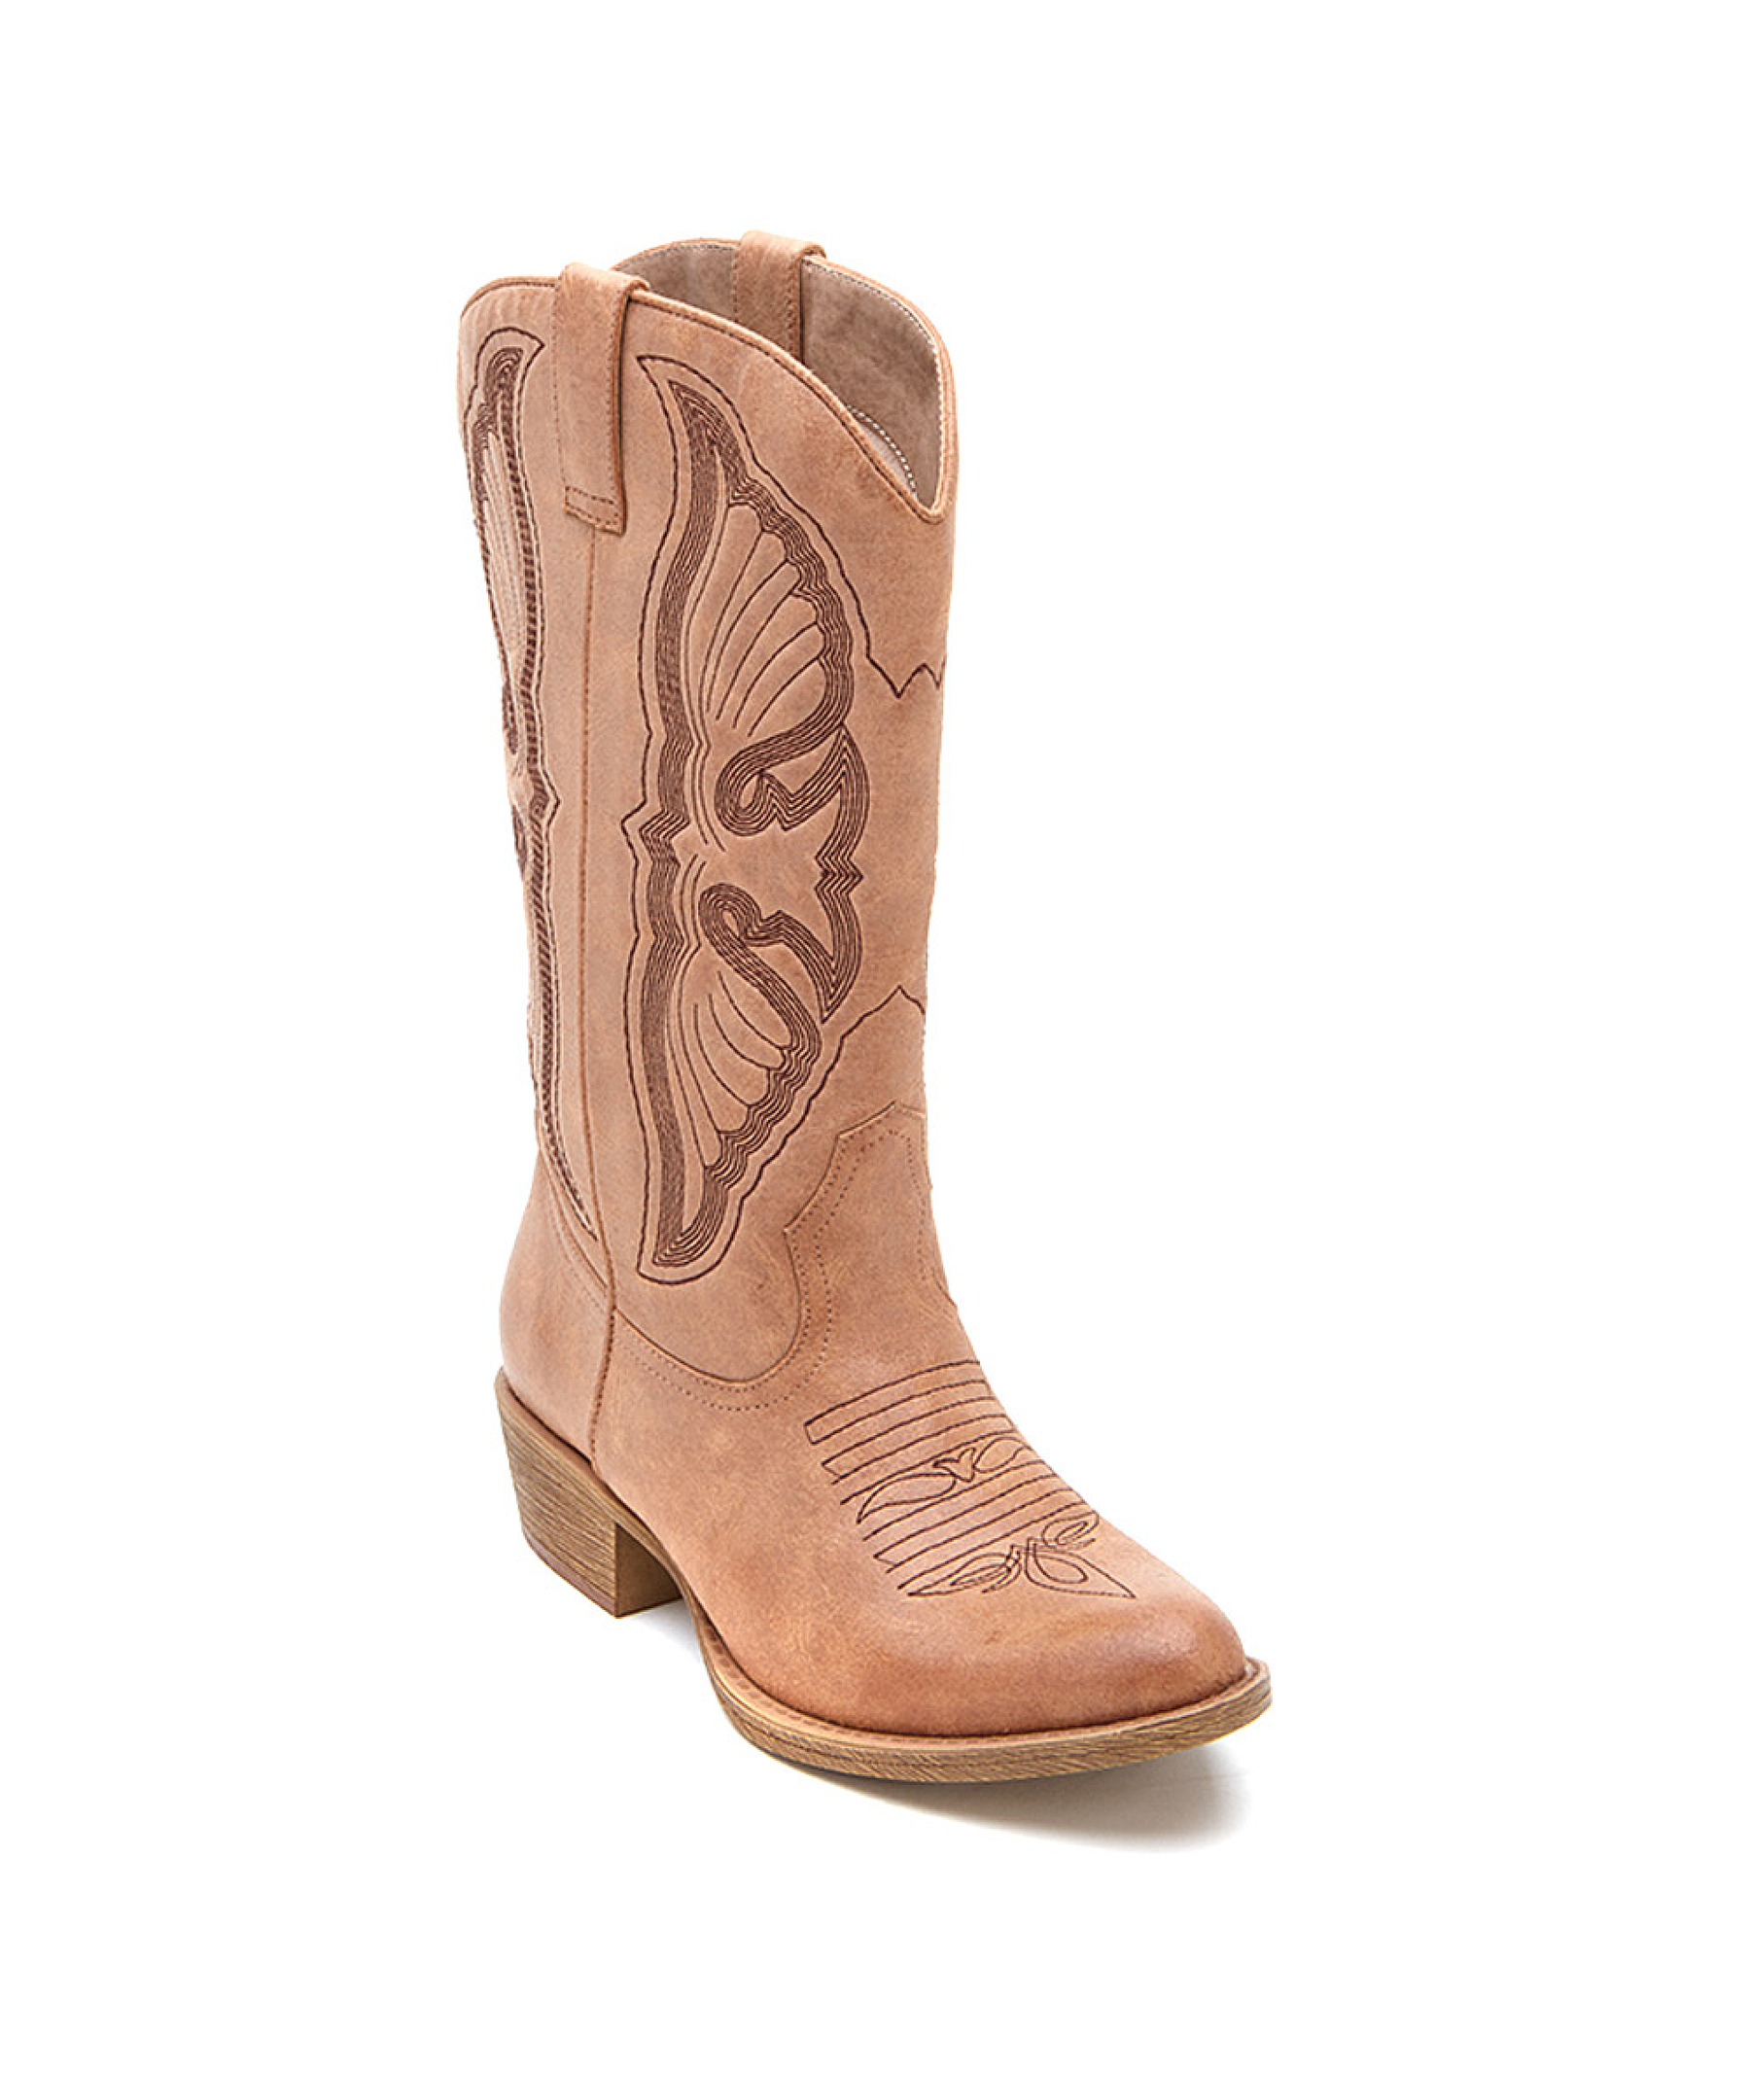 matisse s chance boots in lyst